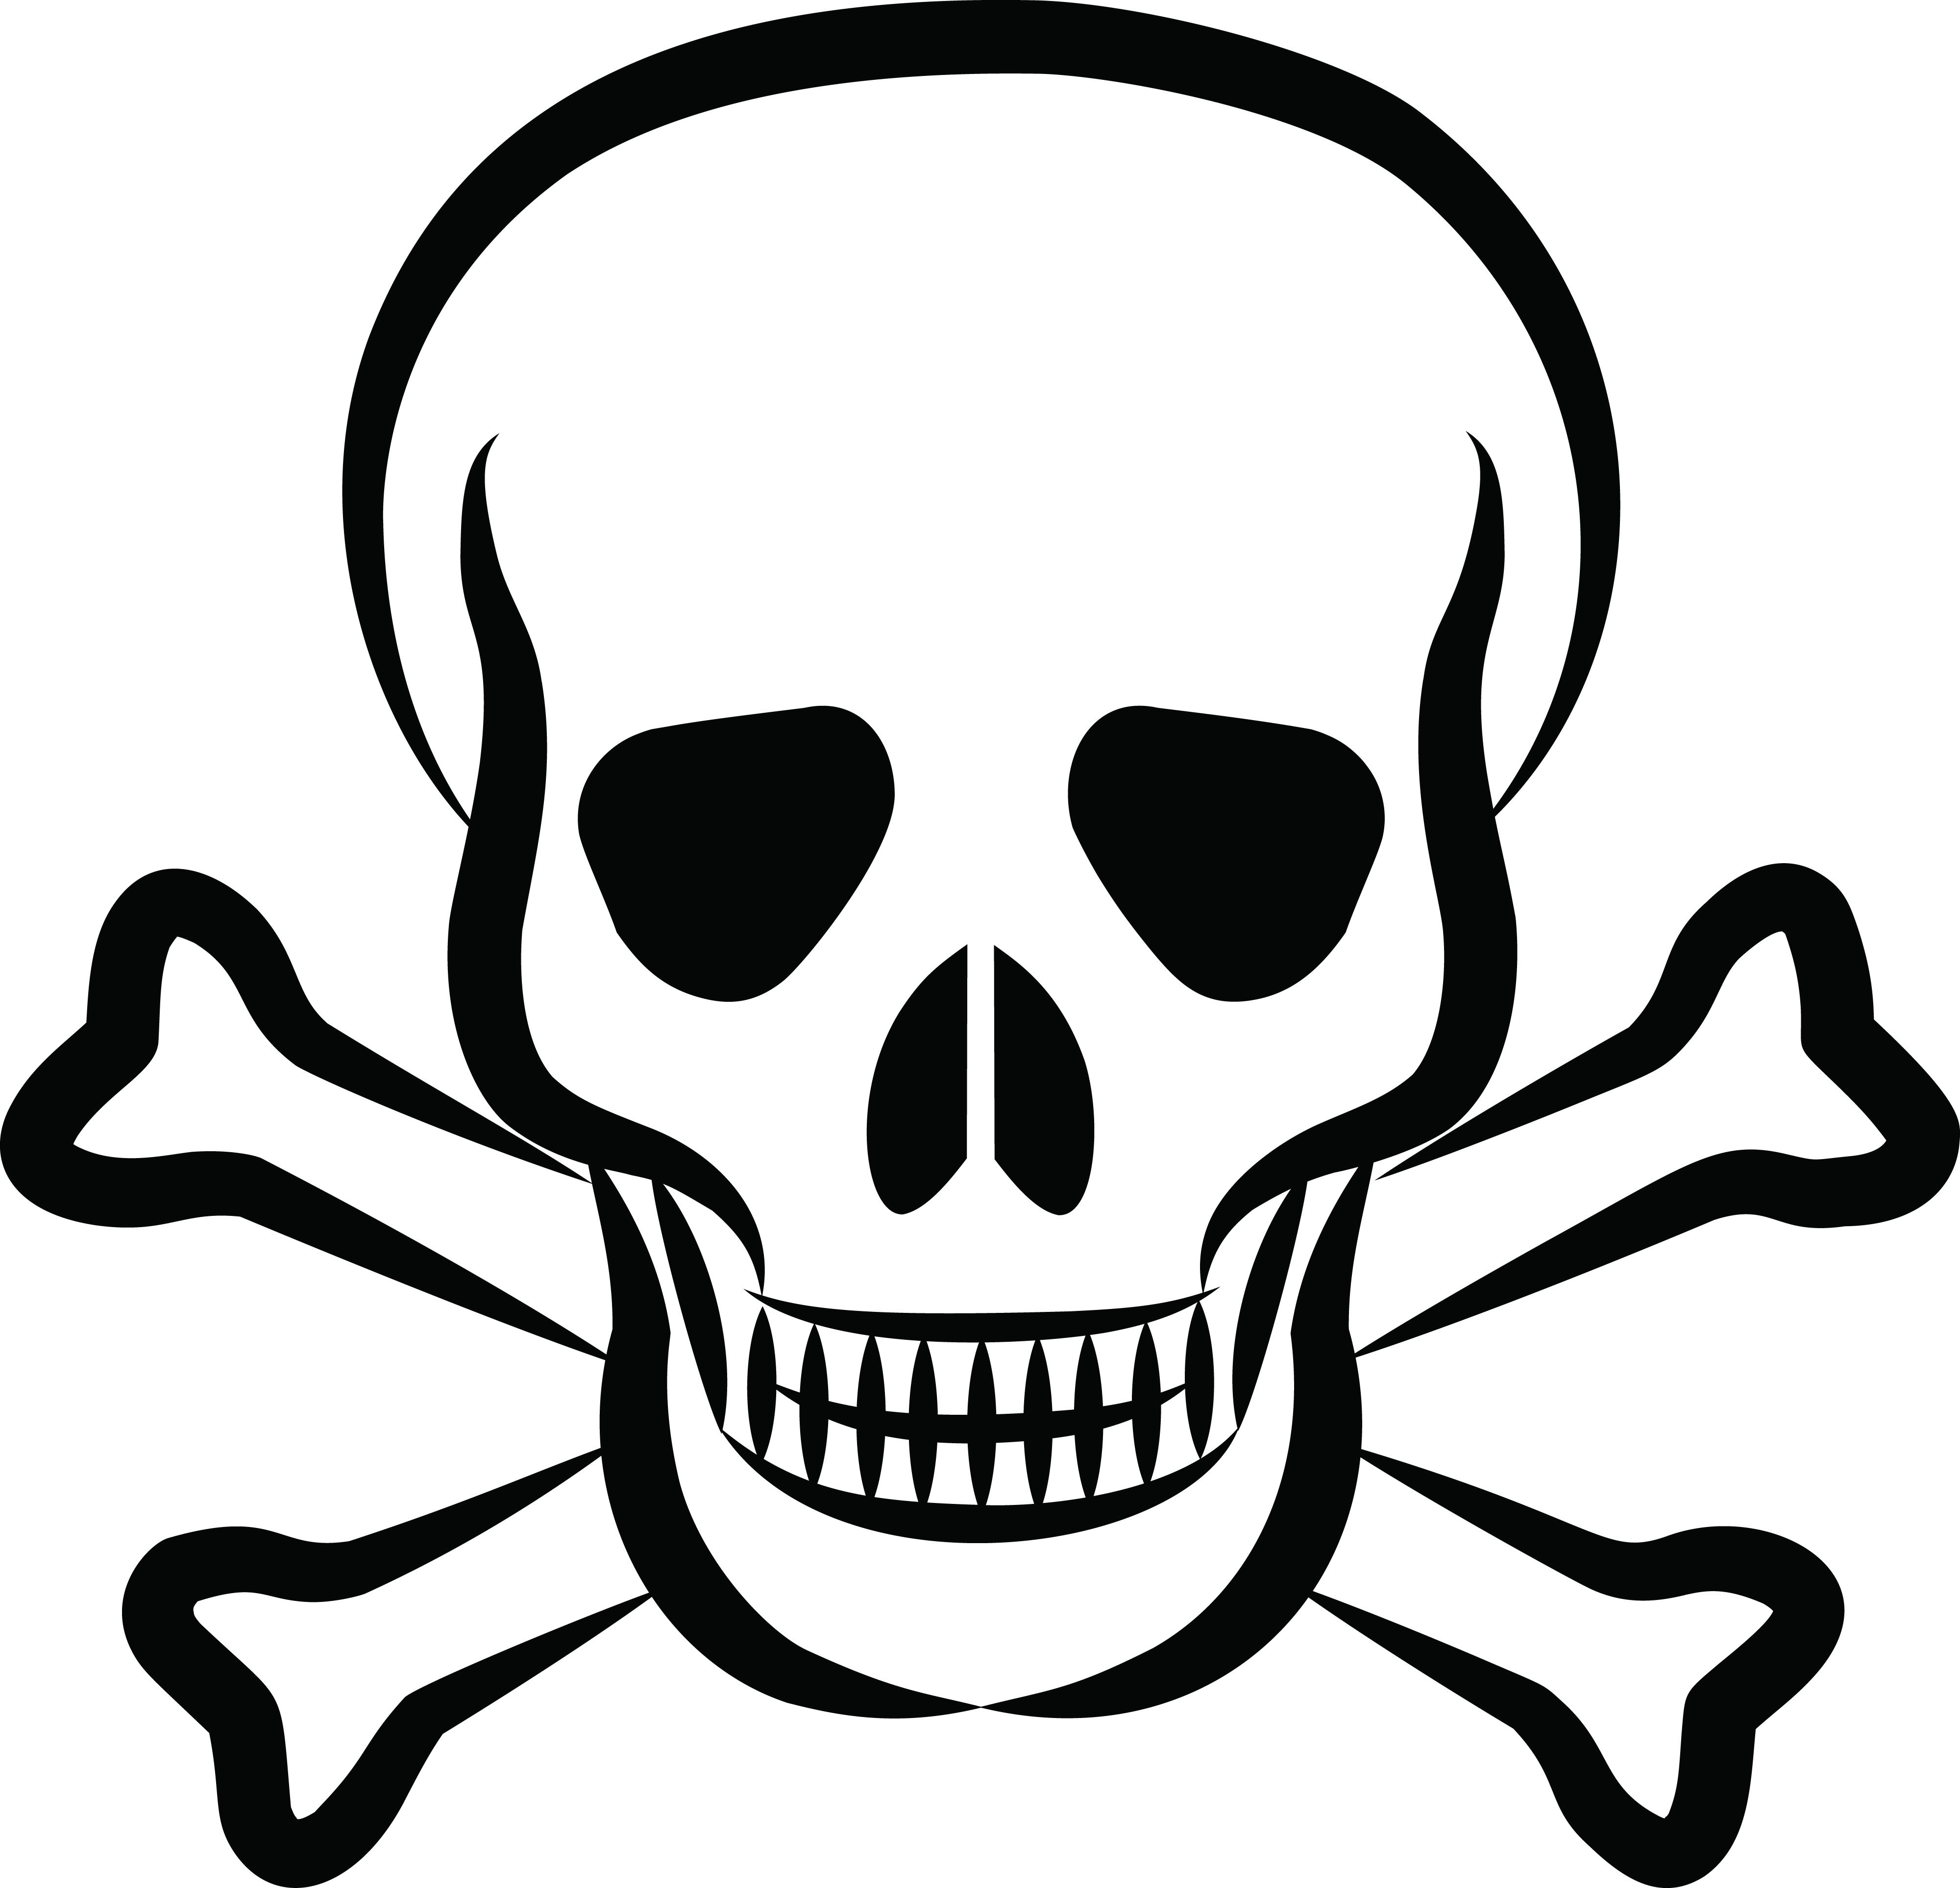 Free Clipart Of A Skull And Crossbones